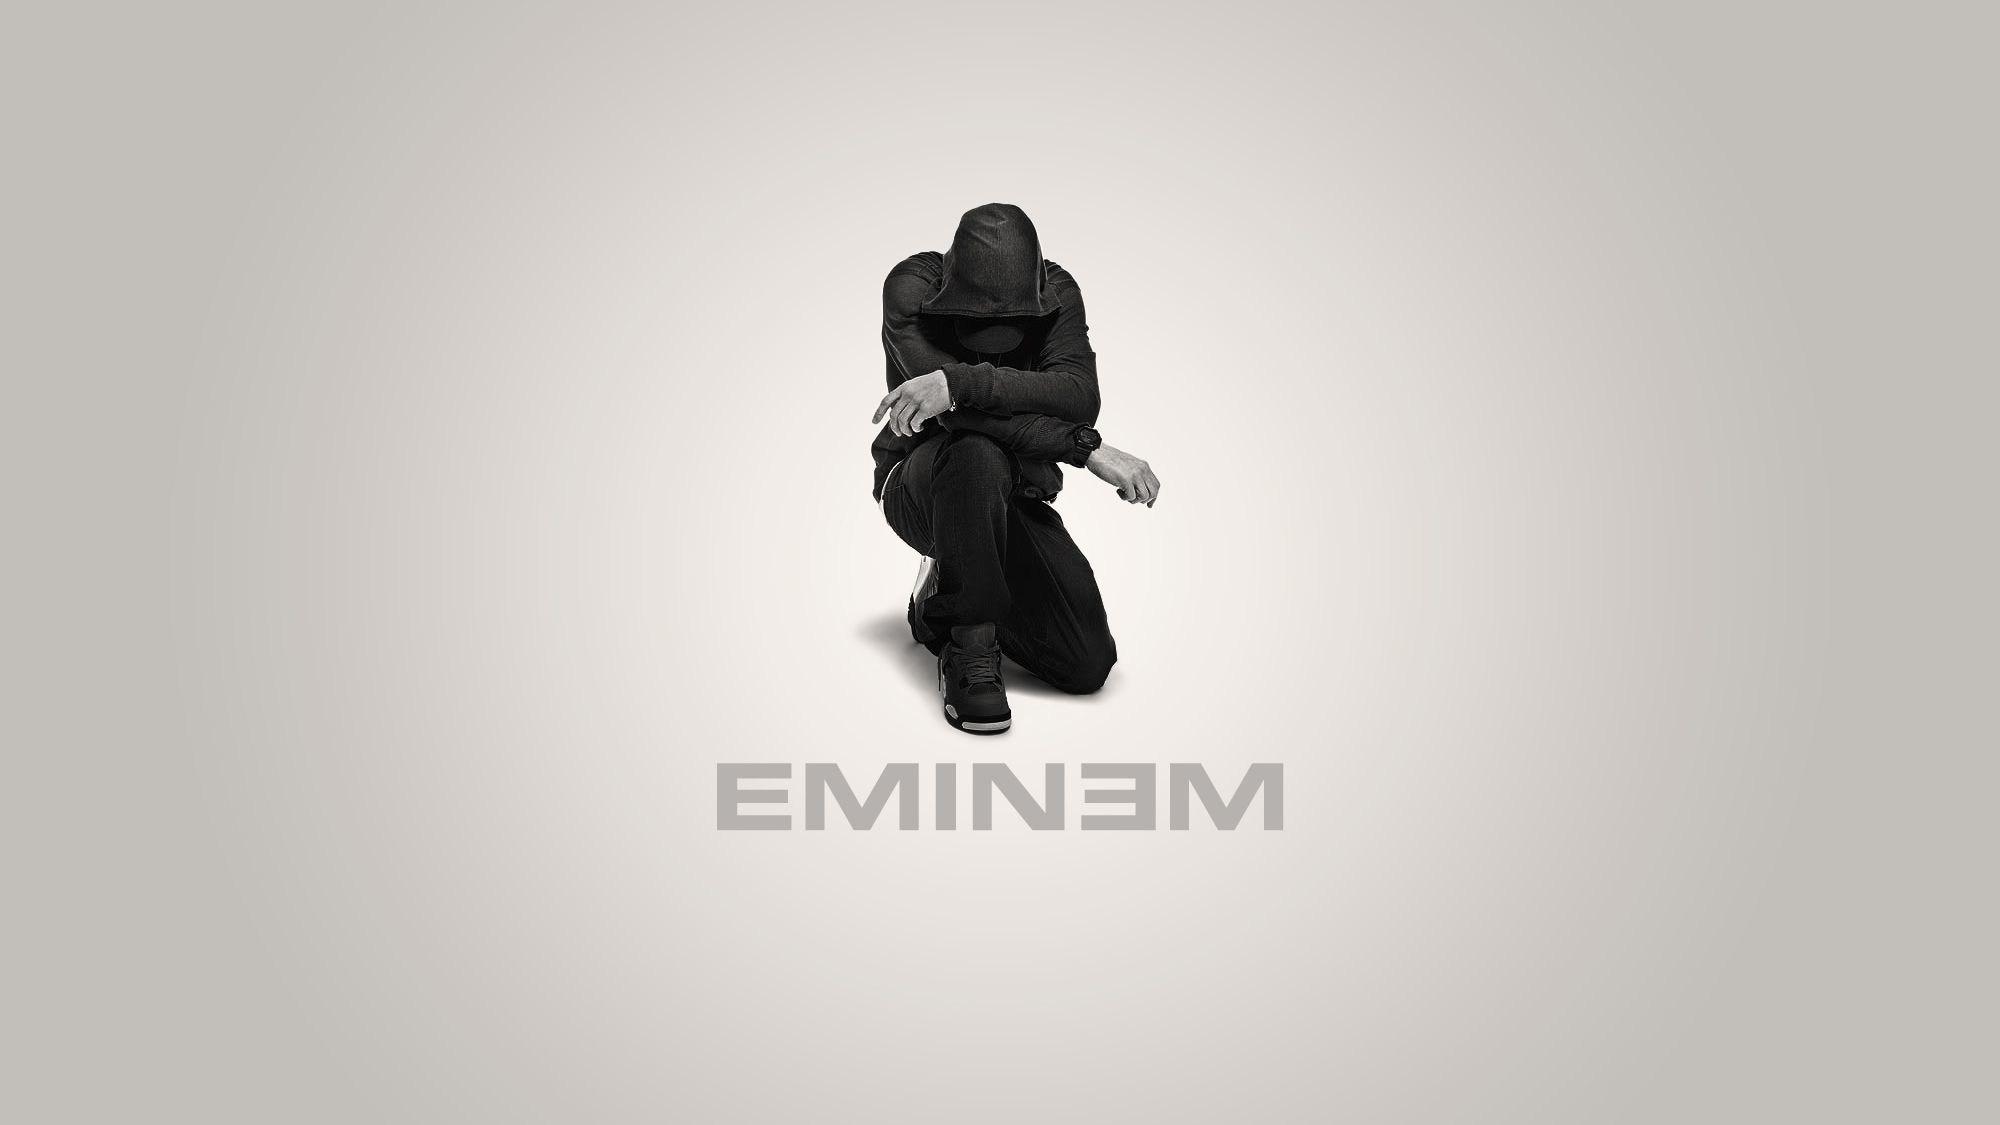 2000x1125 ... Eminem Recovery Wallpapers.  0.047 MB